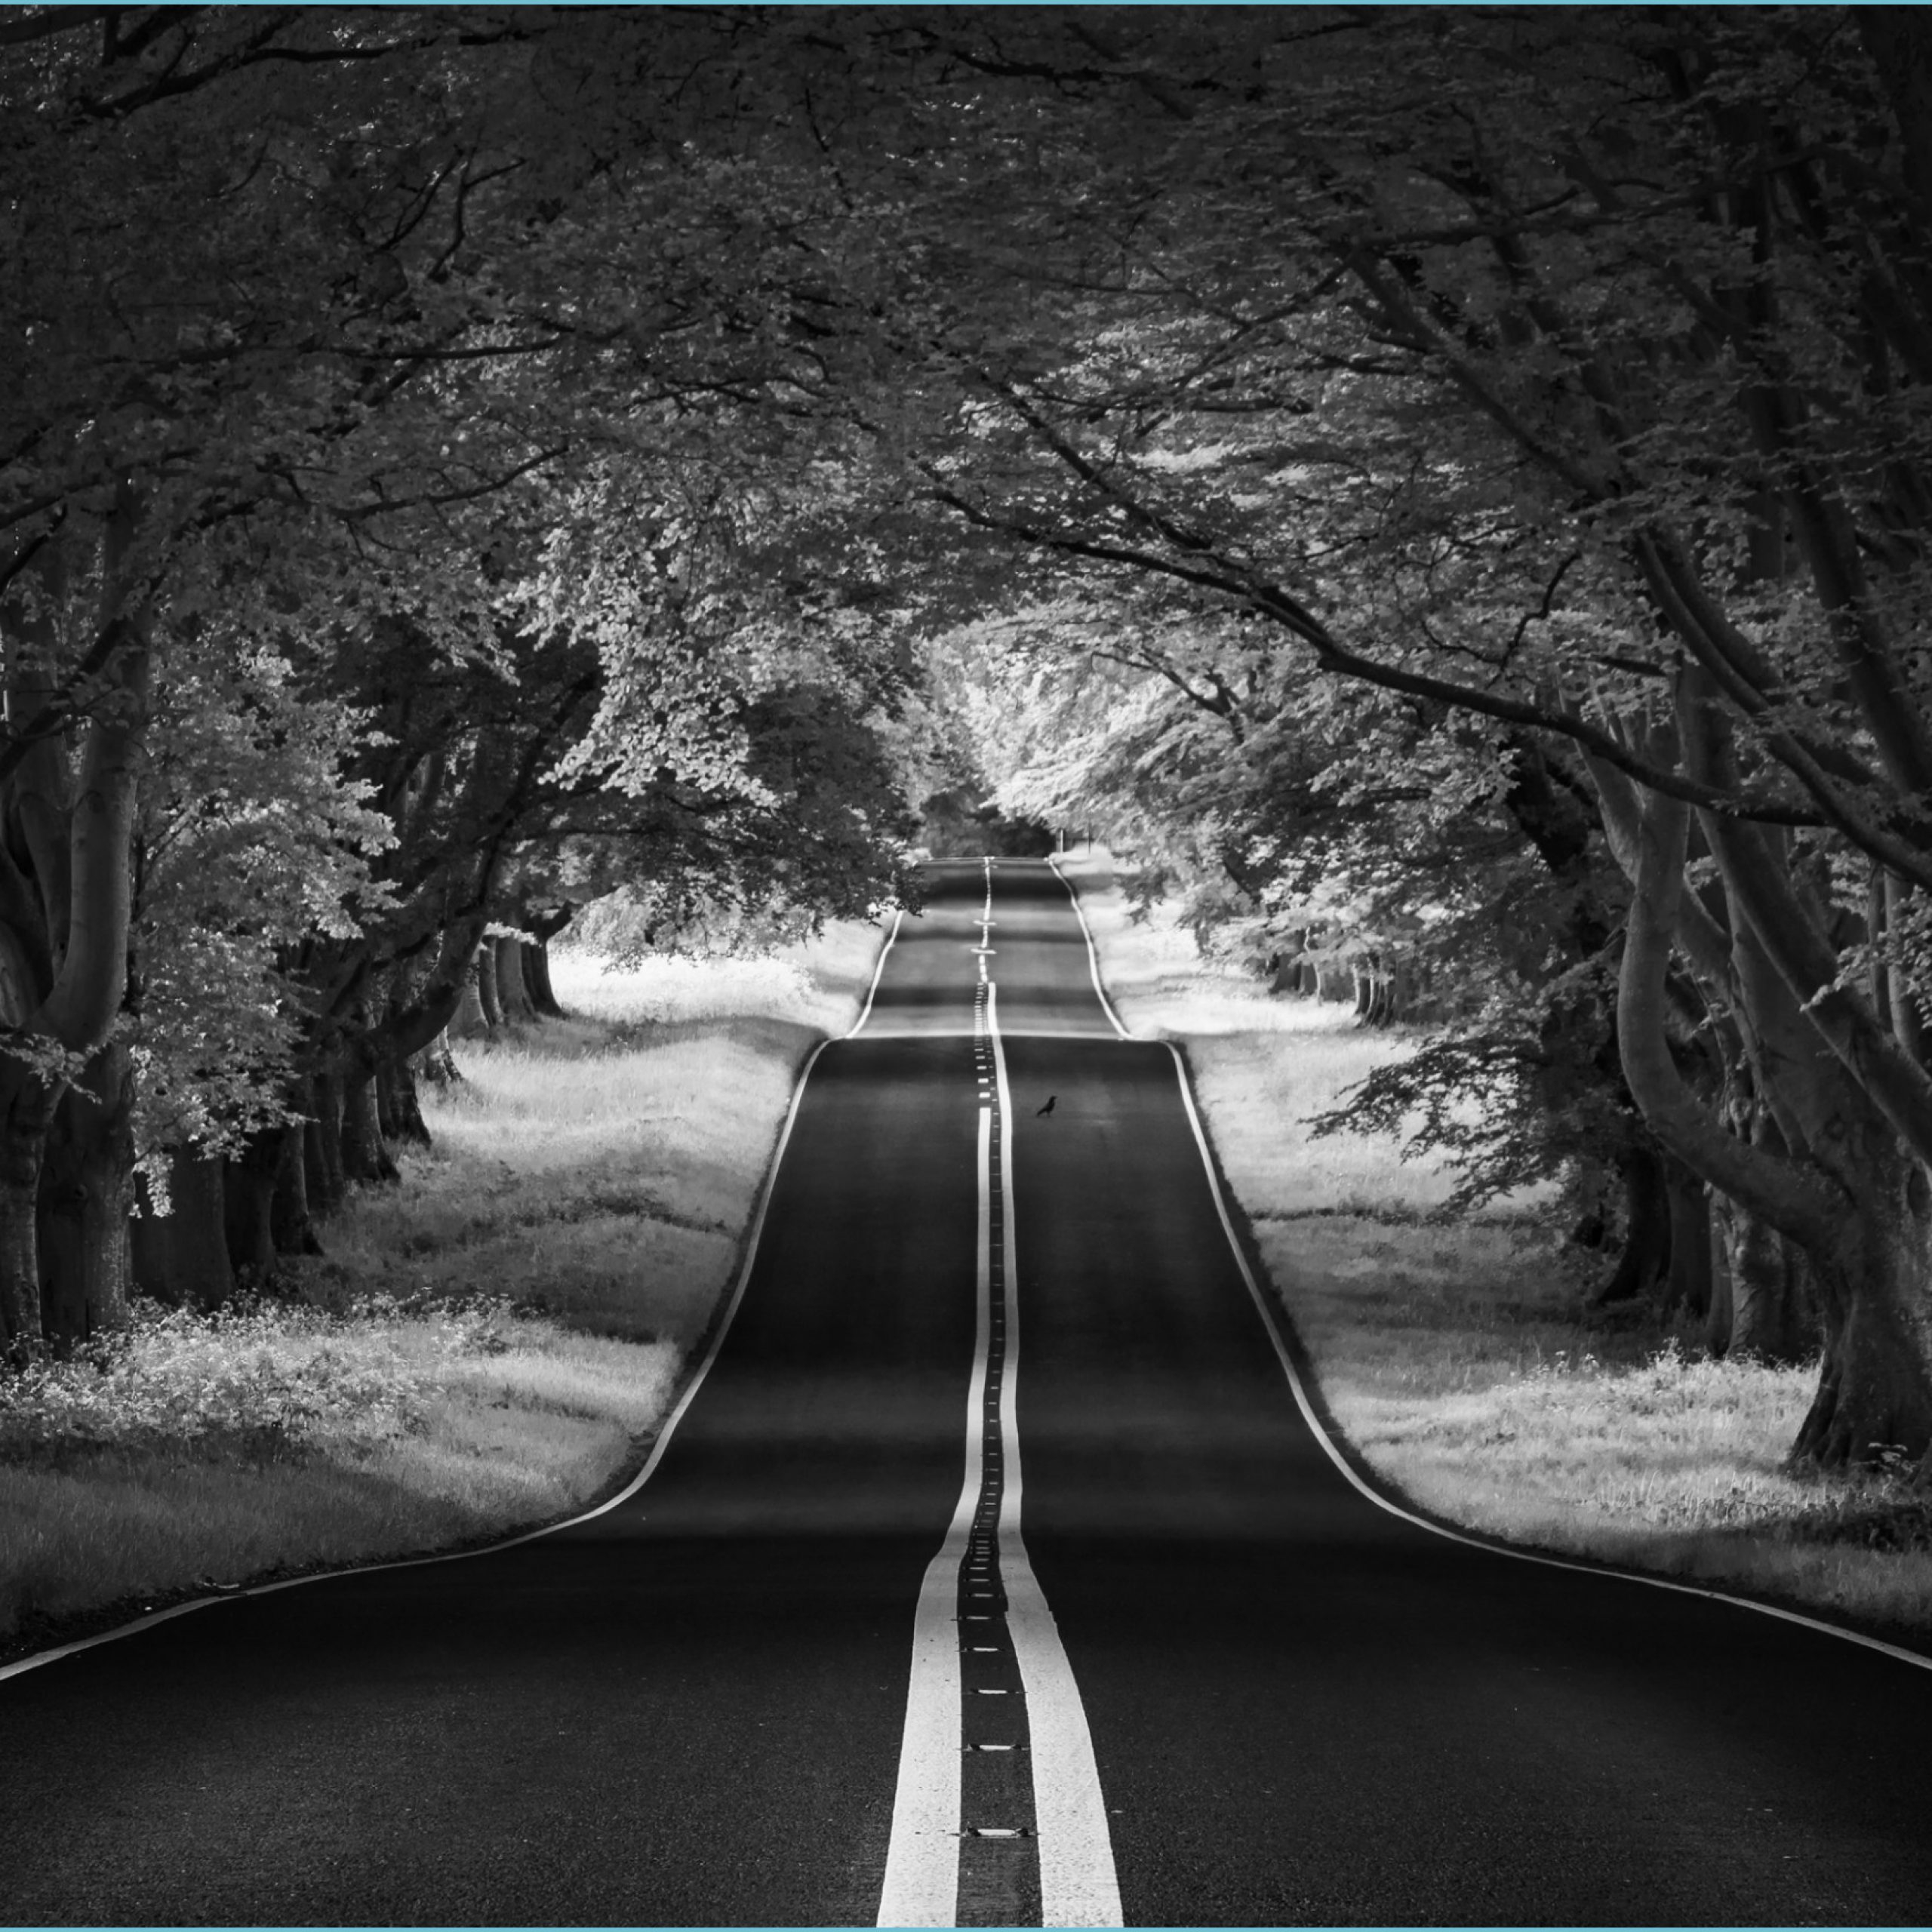 road landscape aesthetic black and white ultra hd desktop aesthetic black and white wallpaper scaled